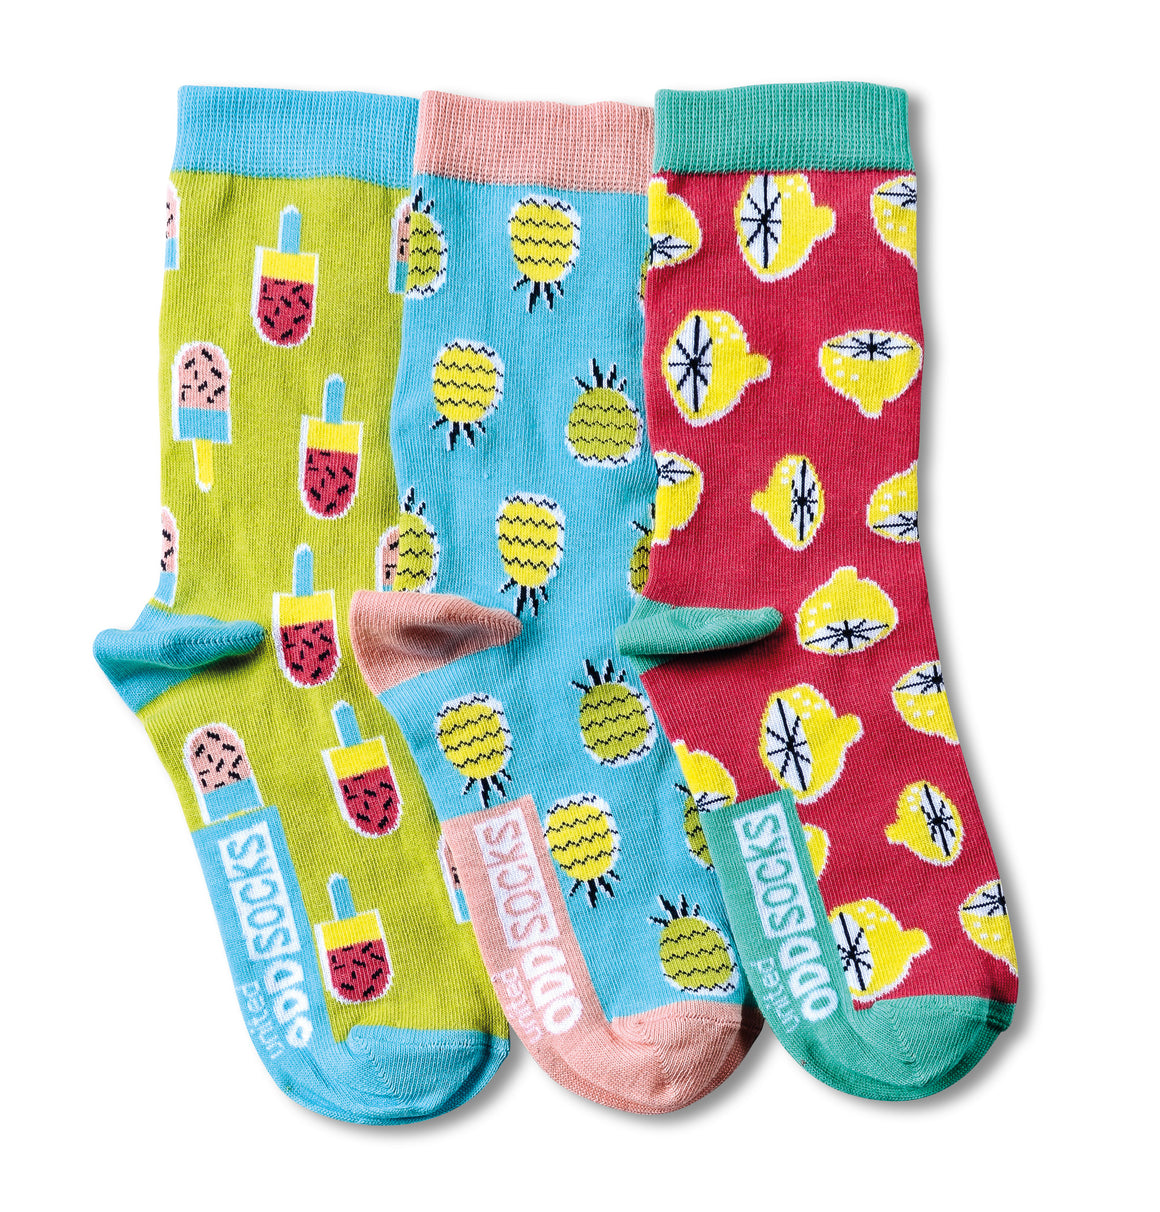 United Odd Socks Kitschy Girls 3 Pack